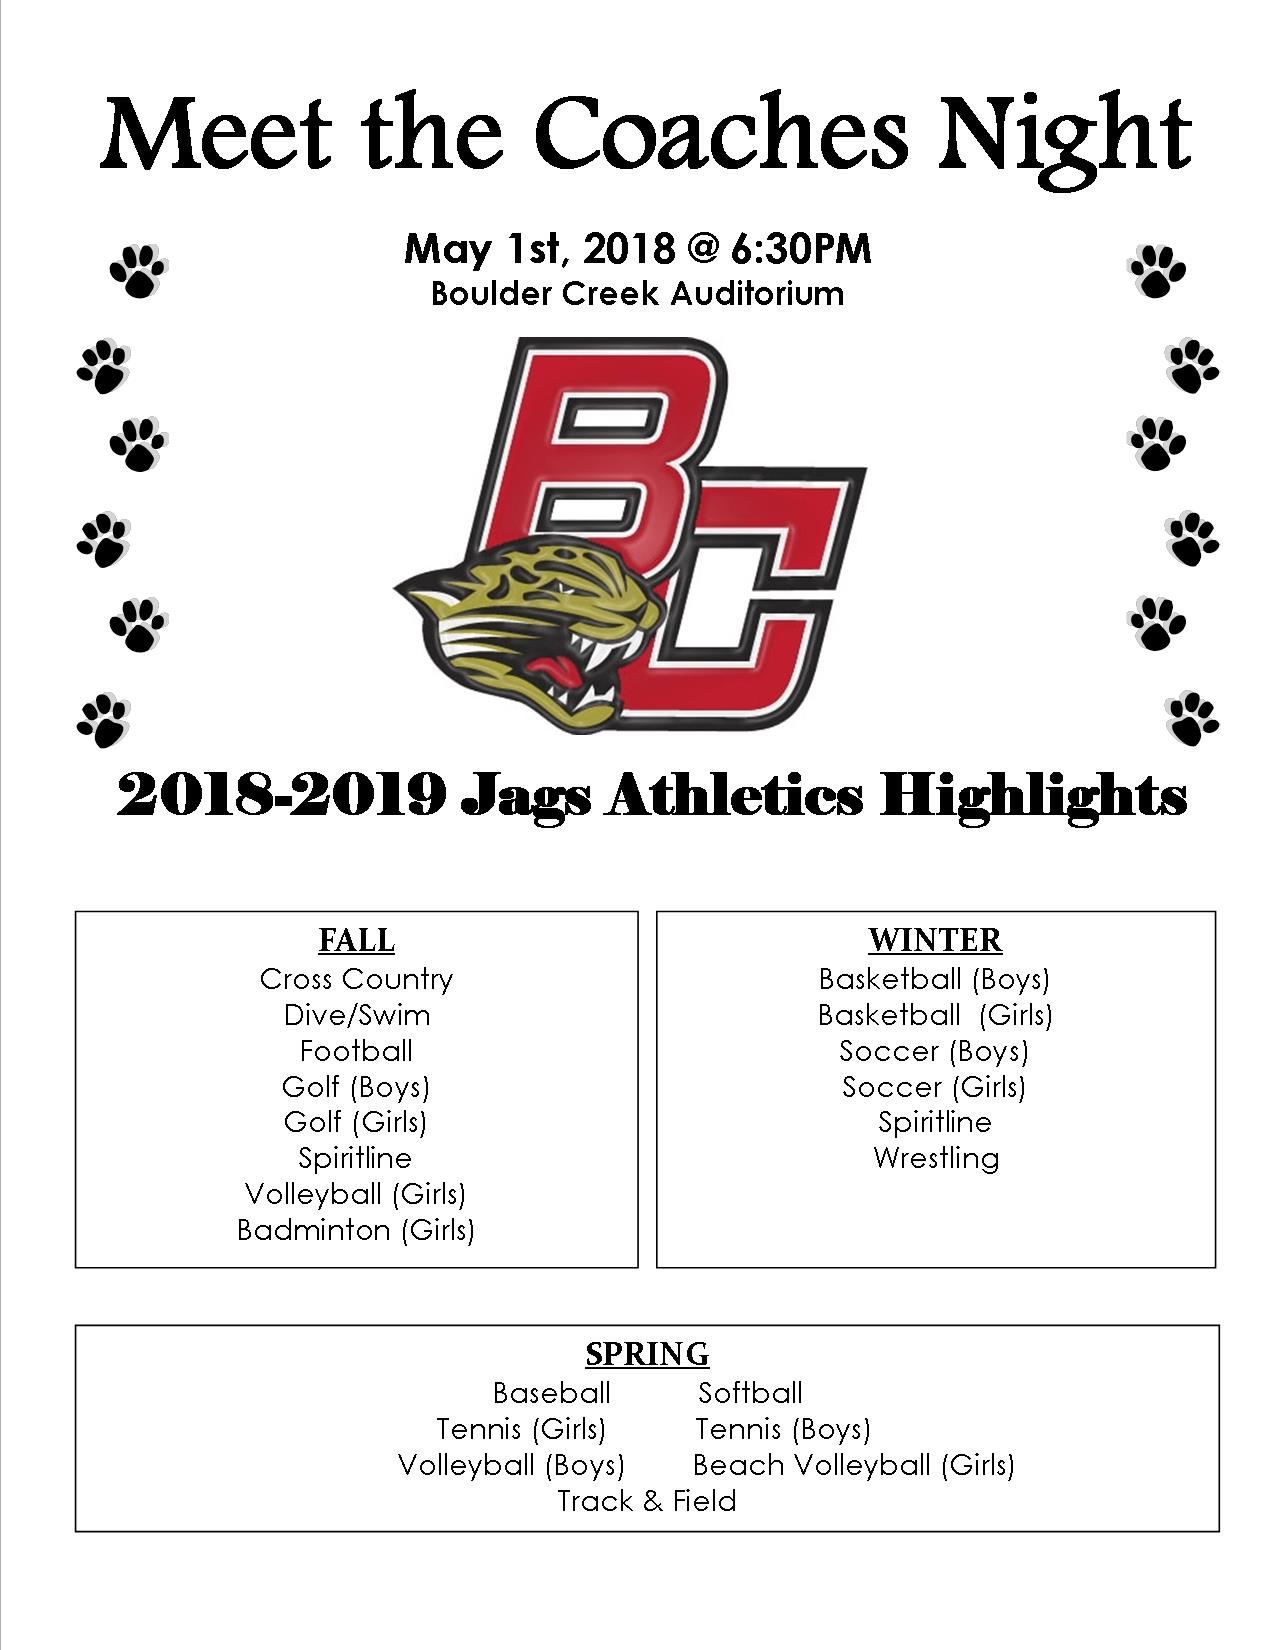 Meet the Coaches Night – Tuesday, May 1st @ 6:30 PM